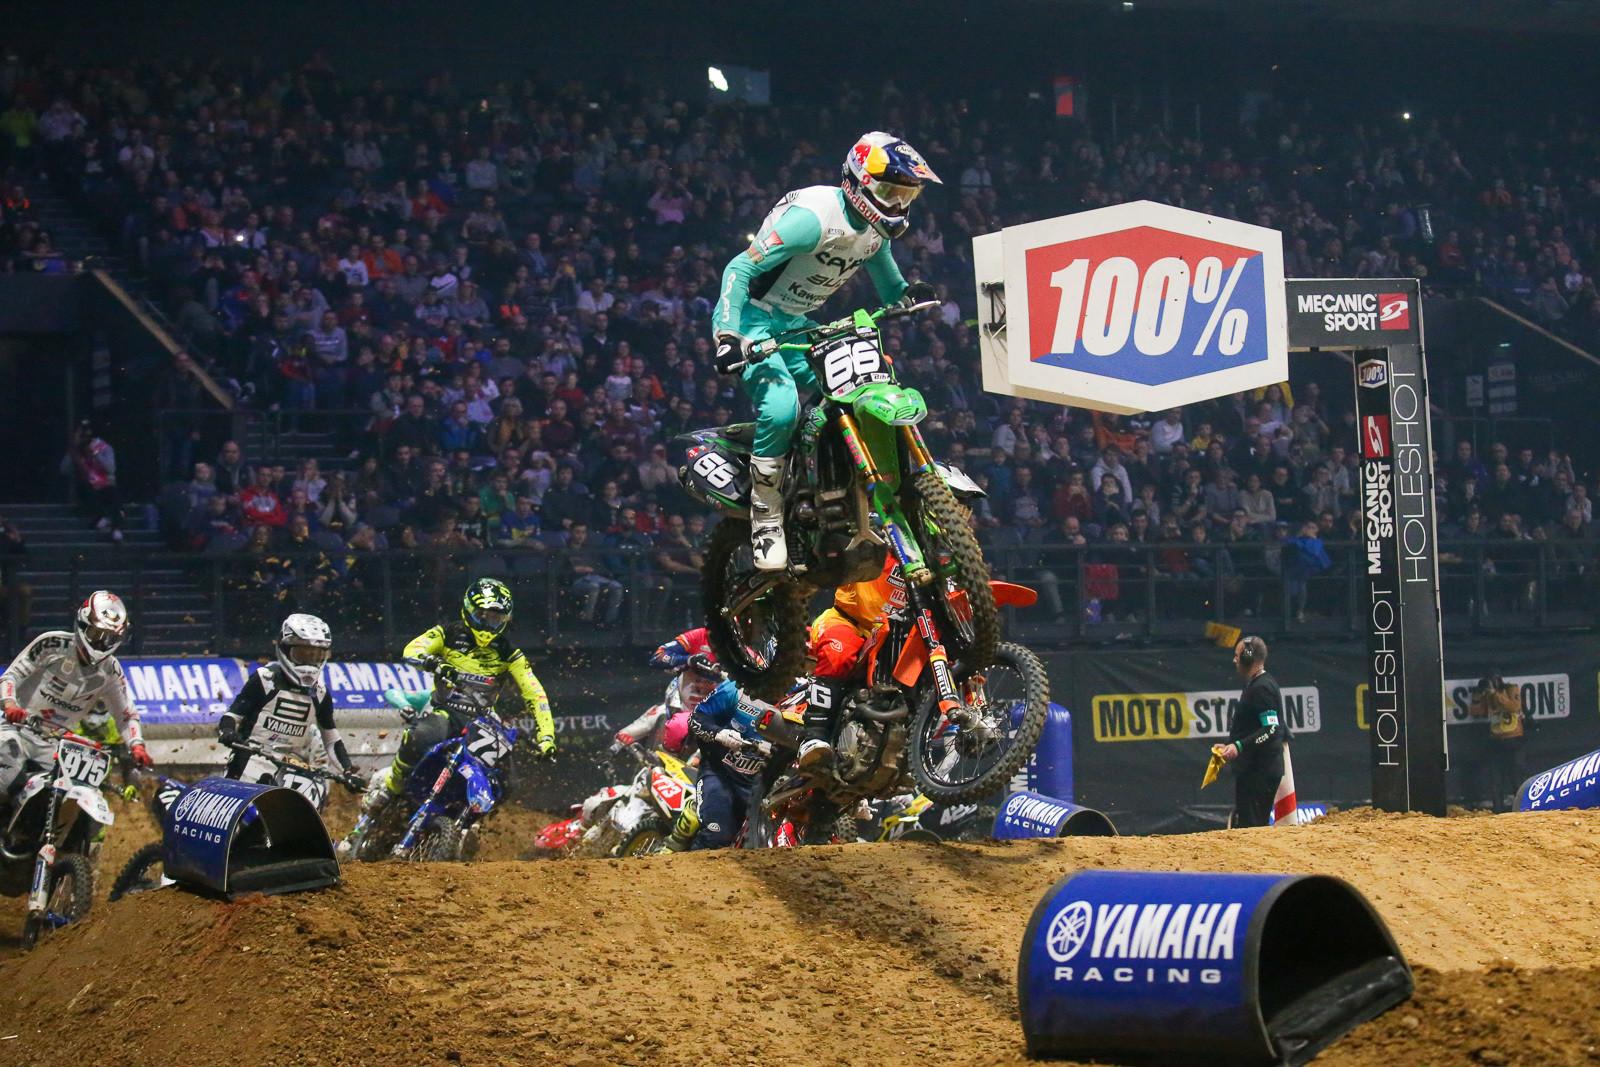 Enzo Lopes got the night started in the SX2 class with this holeshot. He drifted back to third by the end, but looked a lot more comfortable on the new equipment on Sunday than he did the day before.